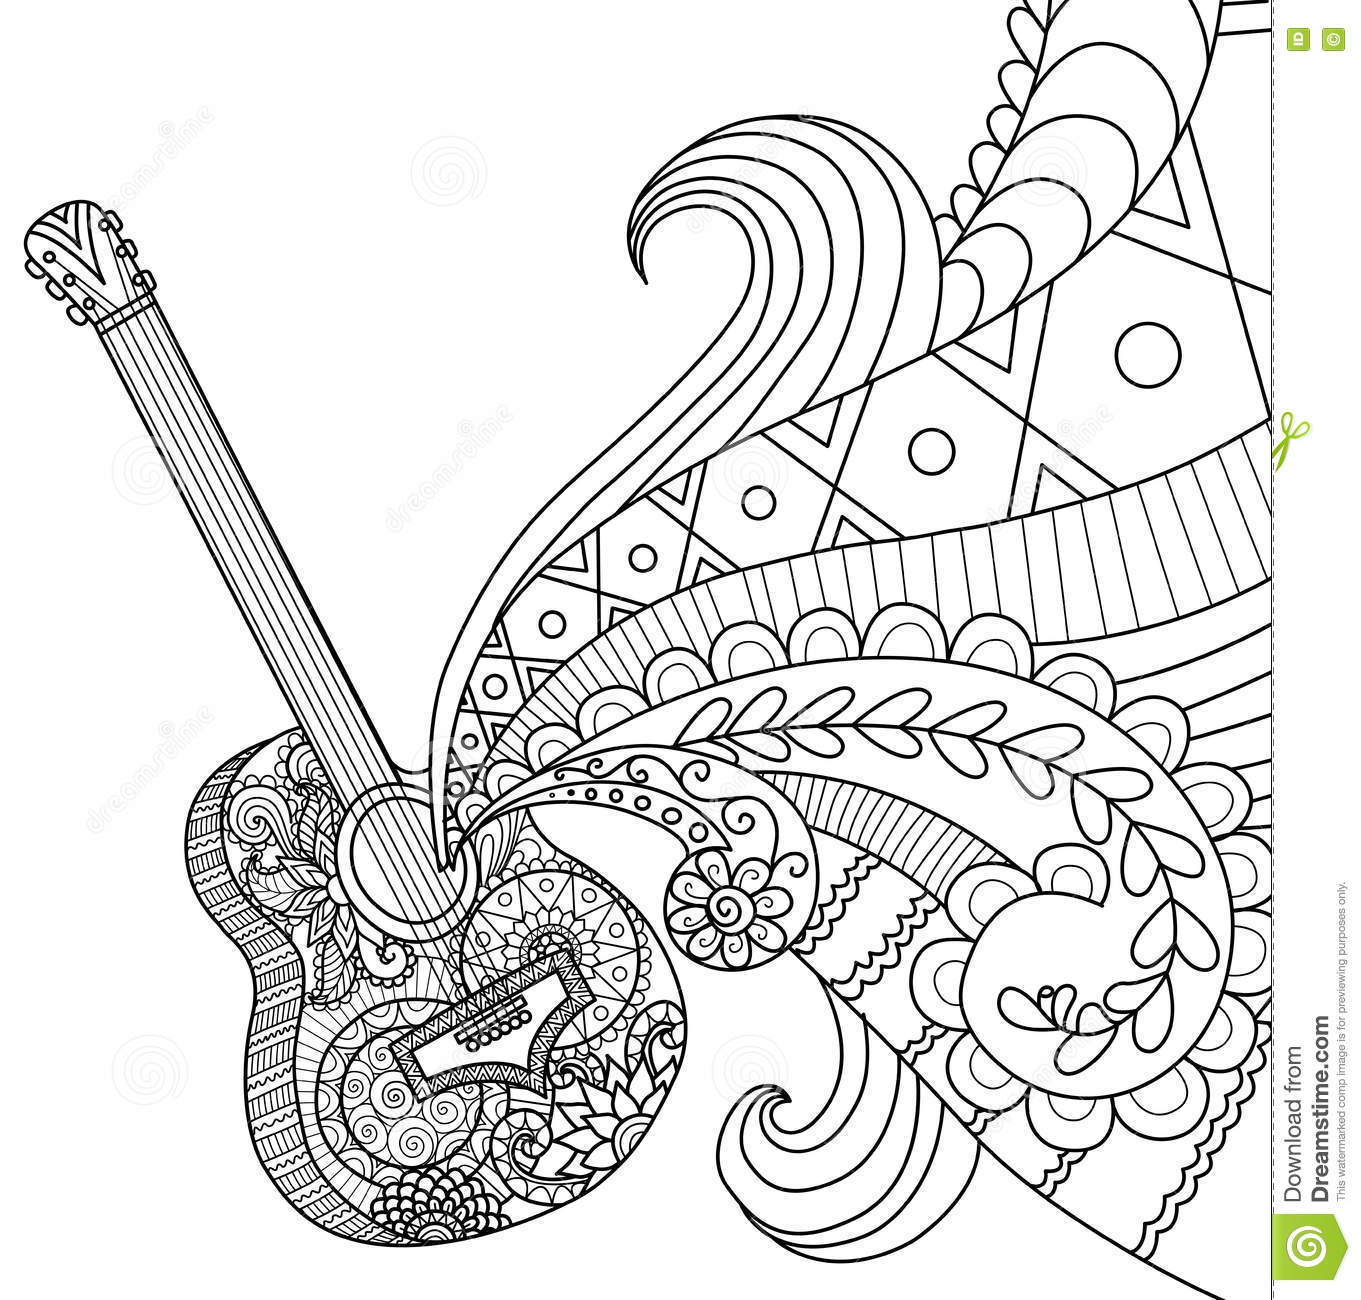 Doodles Design Of Guitar For Coloring Book For Adult Stock Vector